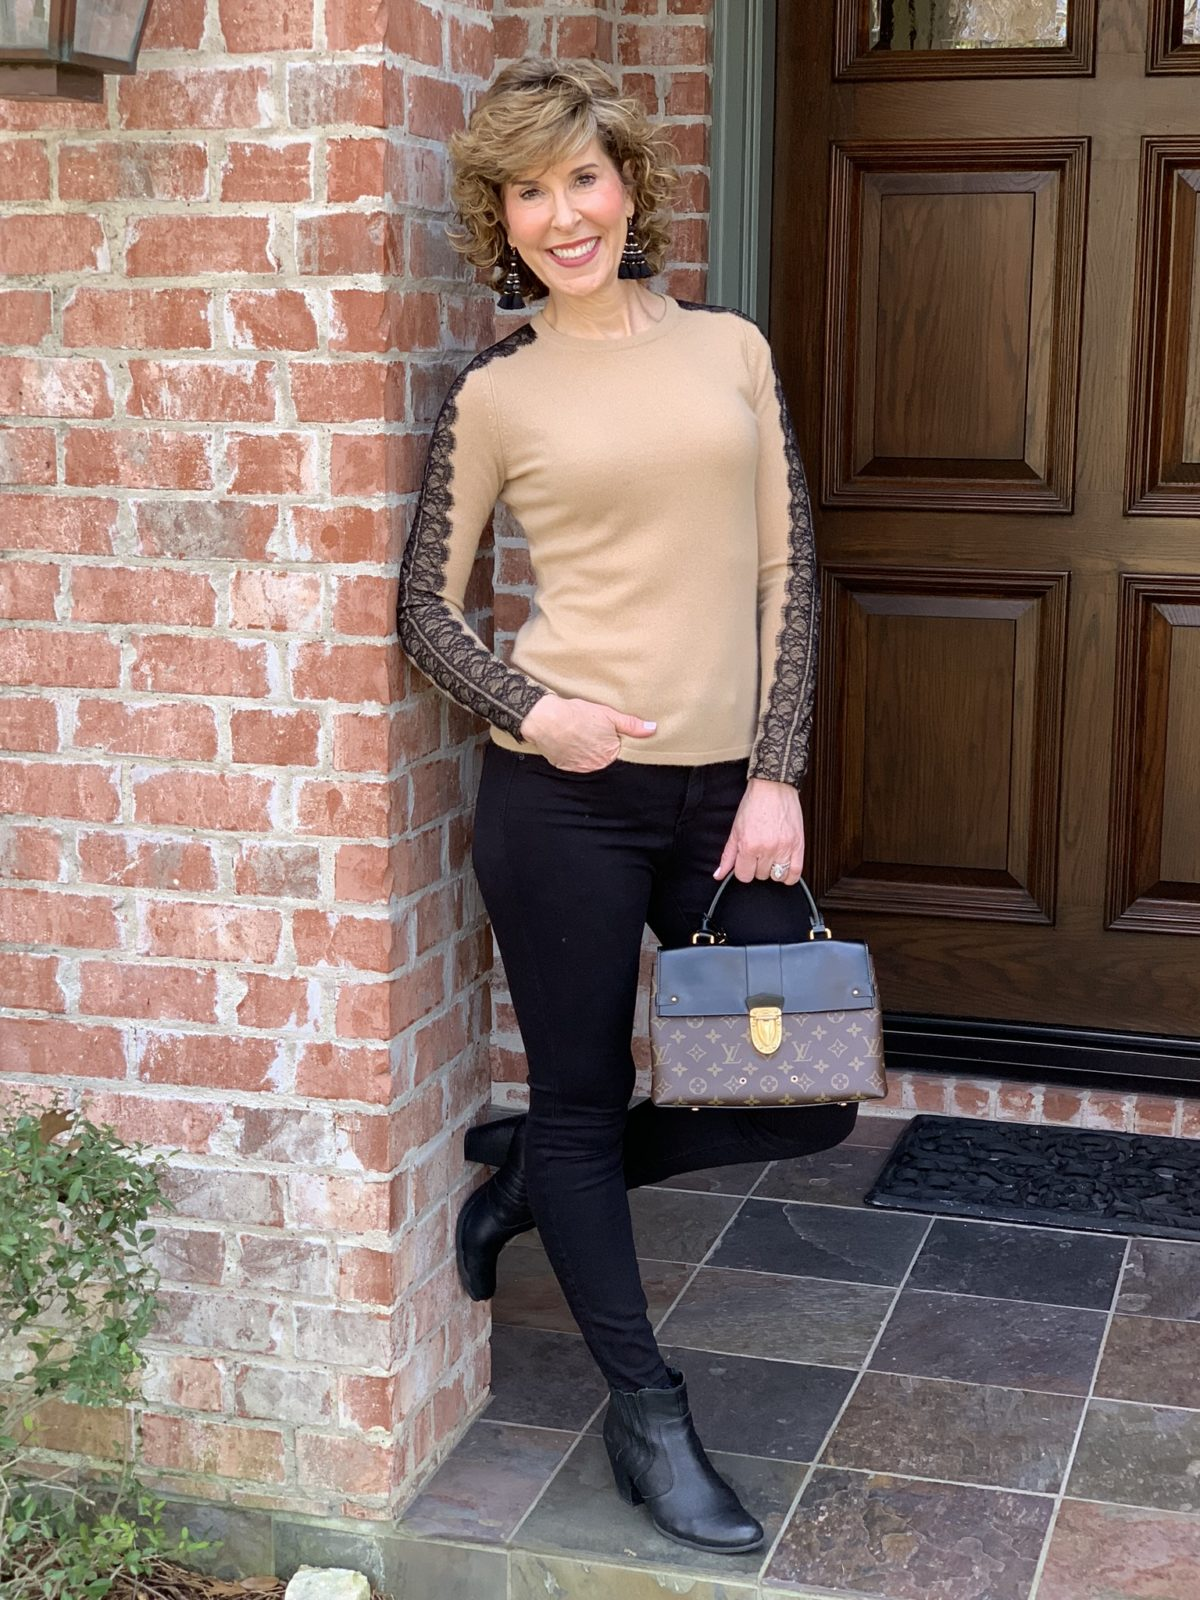 woman standing in archway wearing tan sweater and black pants